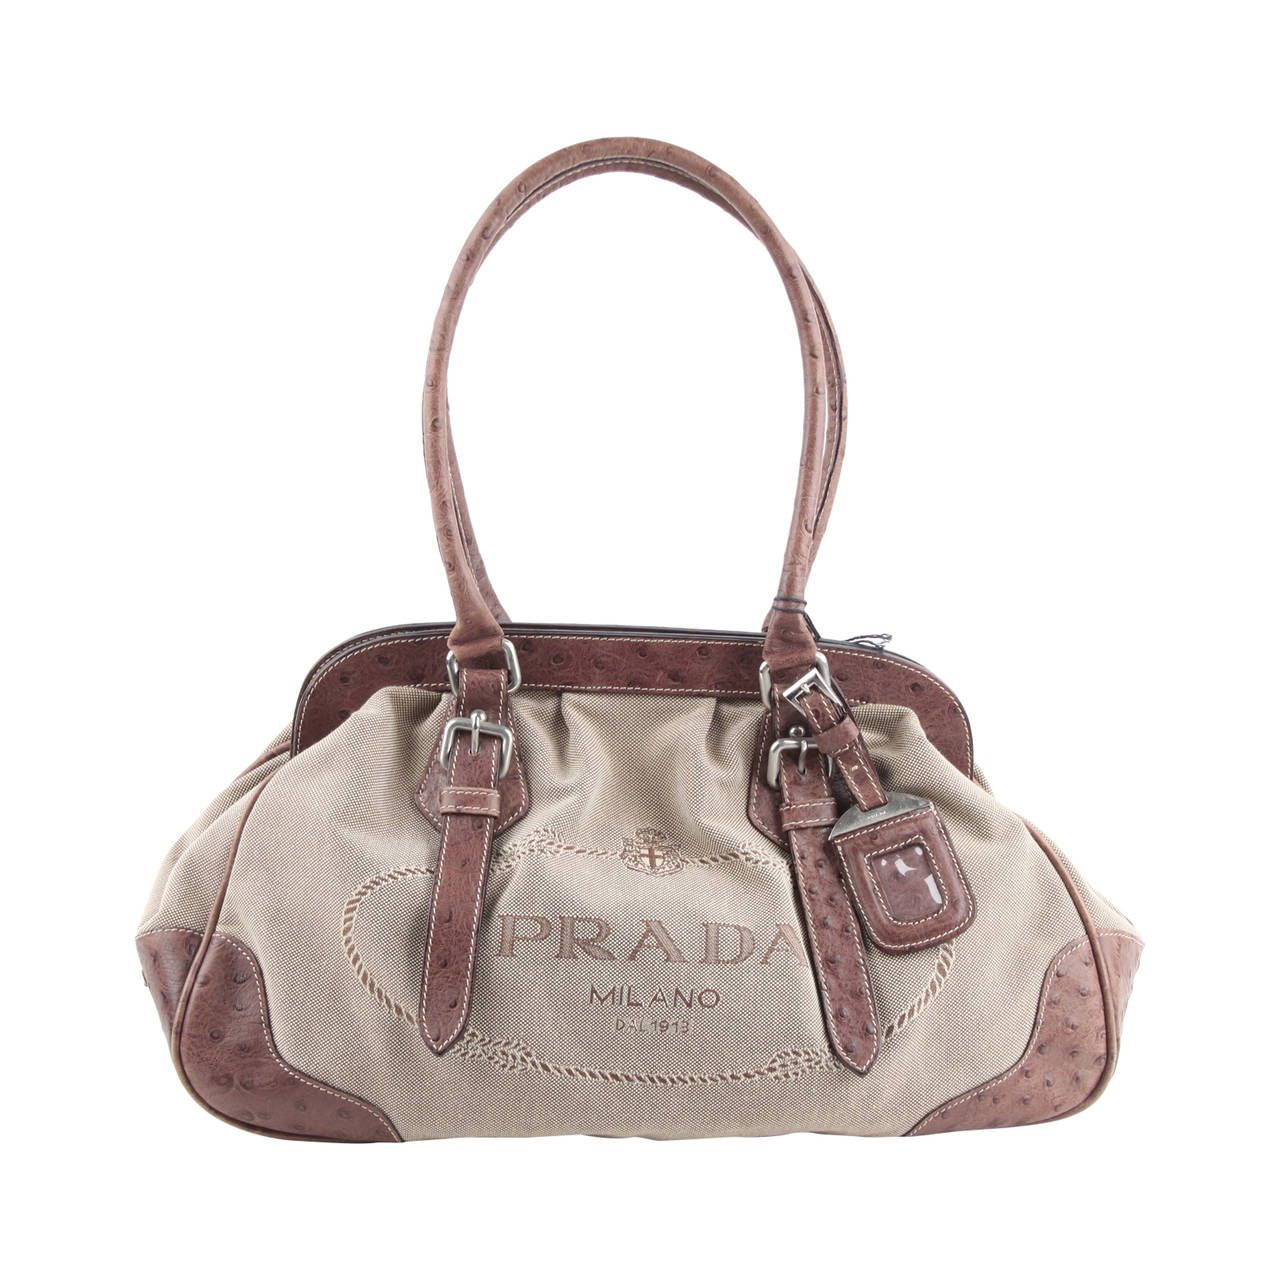 e94ca87fd276 PRADA Beige JACQUARD LOGO Fabric HANDBAG Doctor Bag w/ OSTRICH Leather |  1stdibs.com